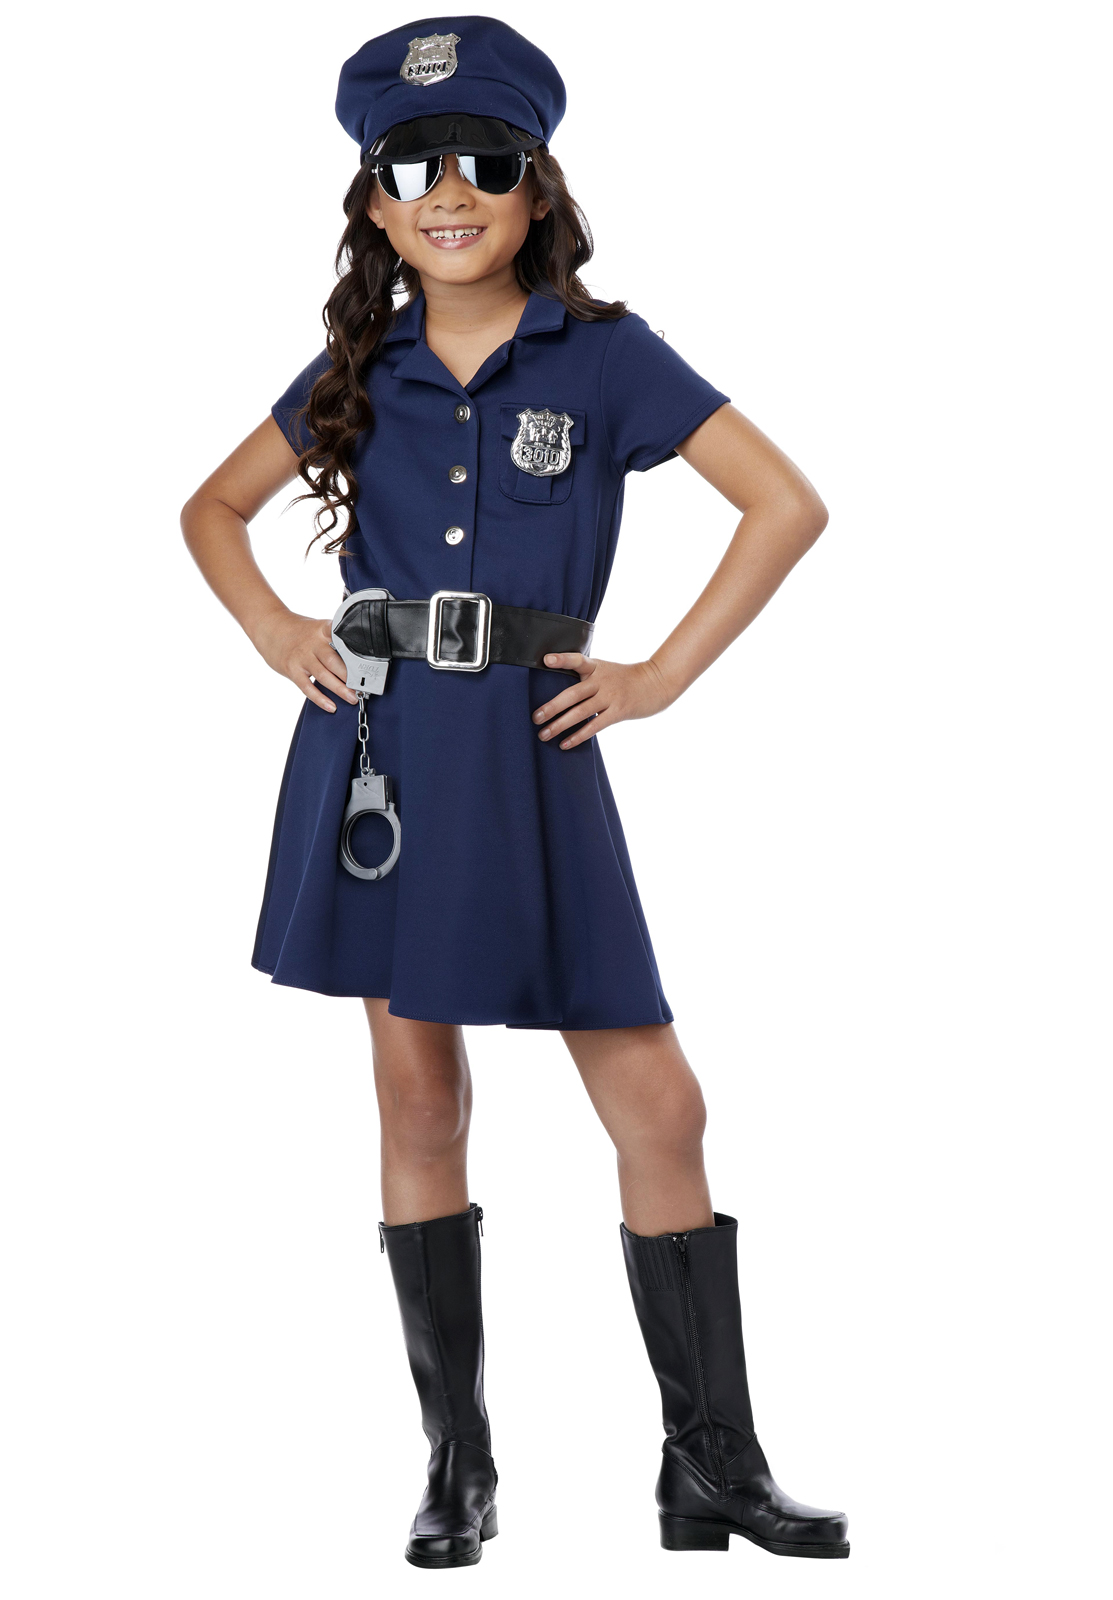 Future Trooper Toddler Costume Girl Police Officer Costume  sc 1 st  Meningrey & Toddler Girl Police Officer Costume - Meningrey